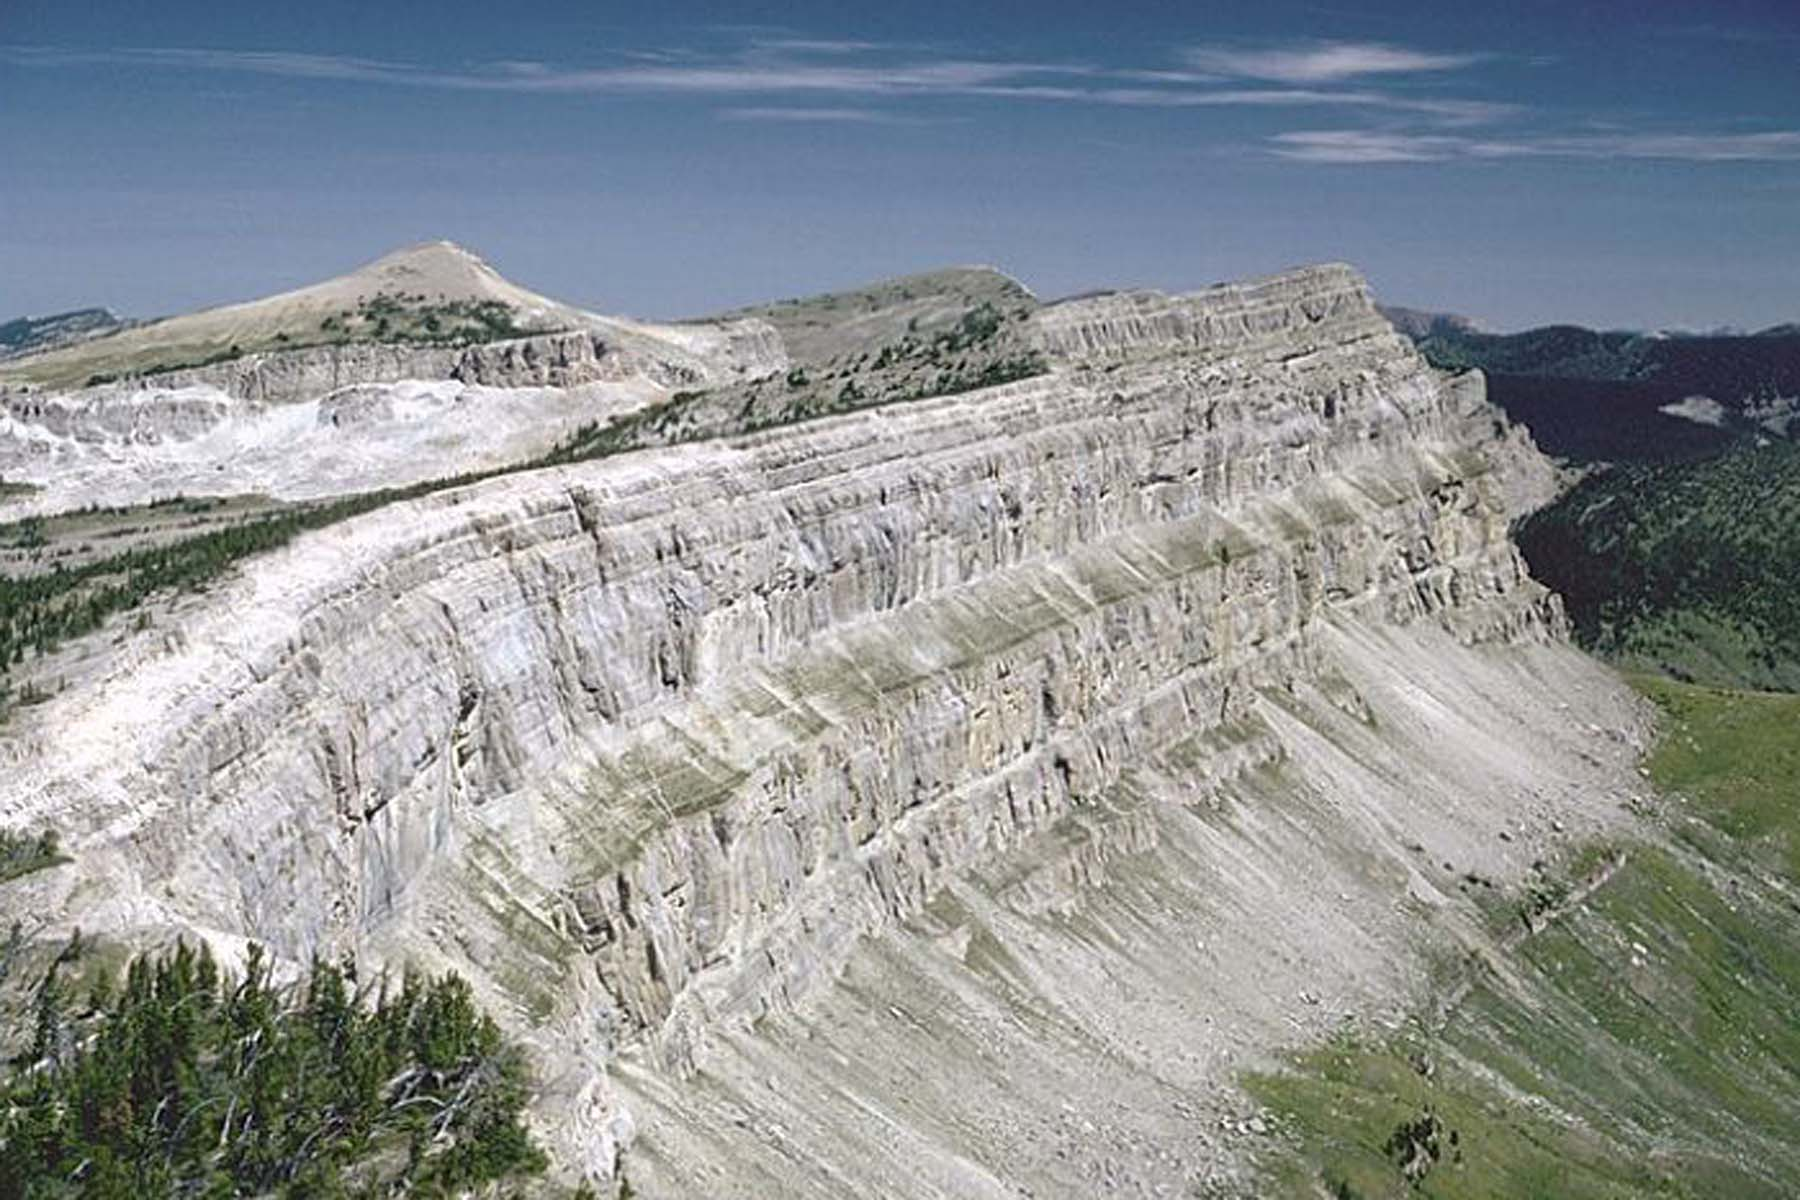 Chinese Wall - Bob Marshall Wilderness